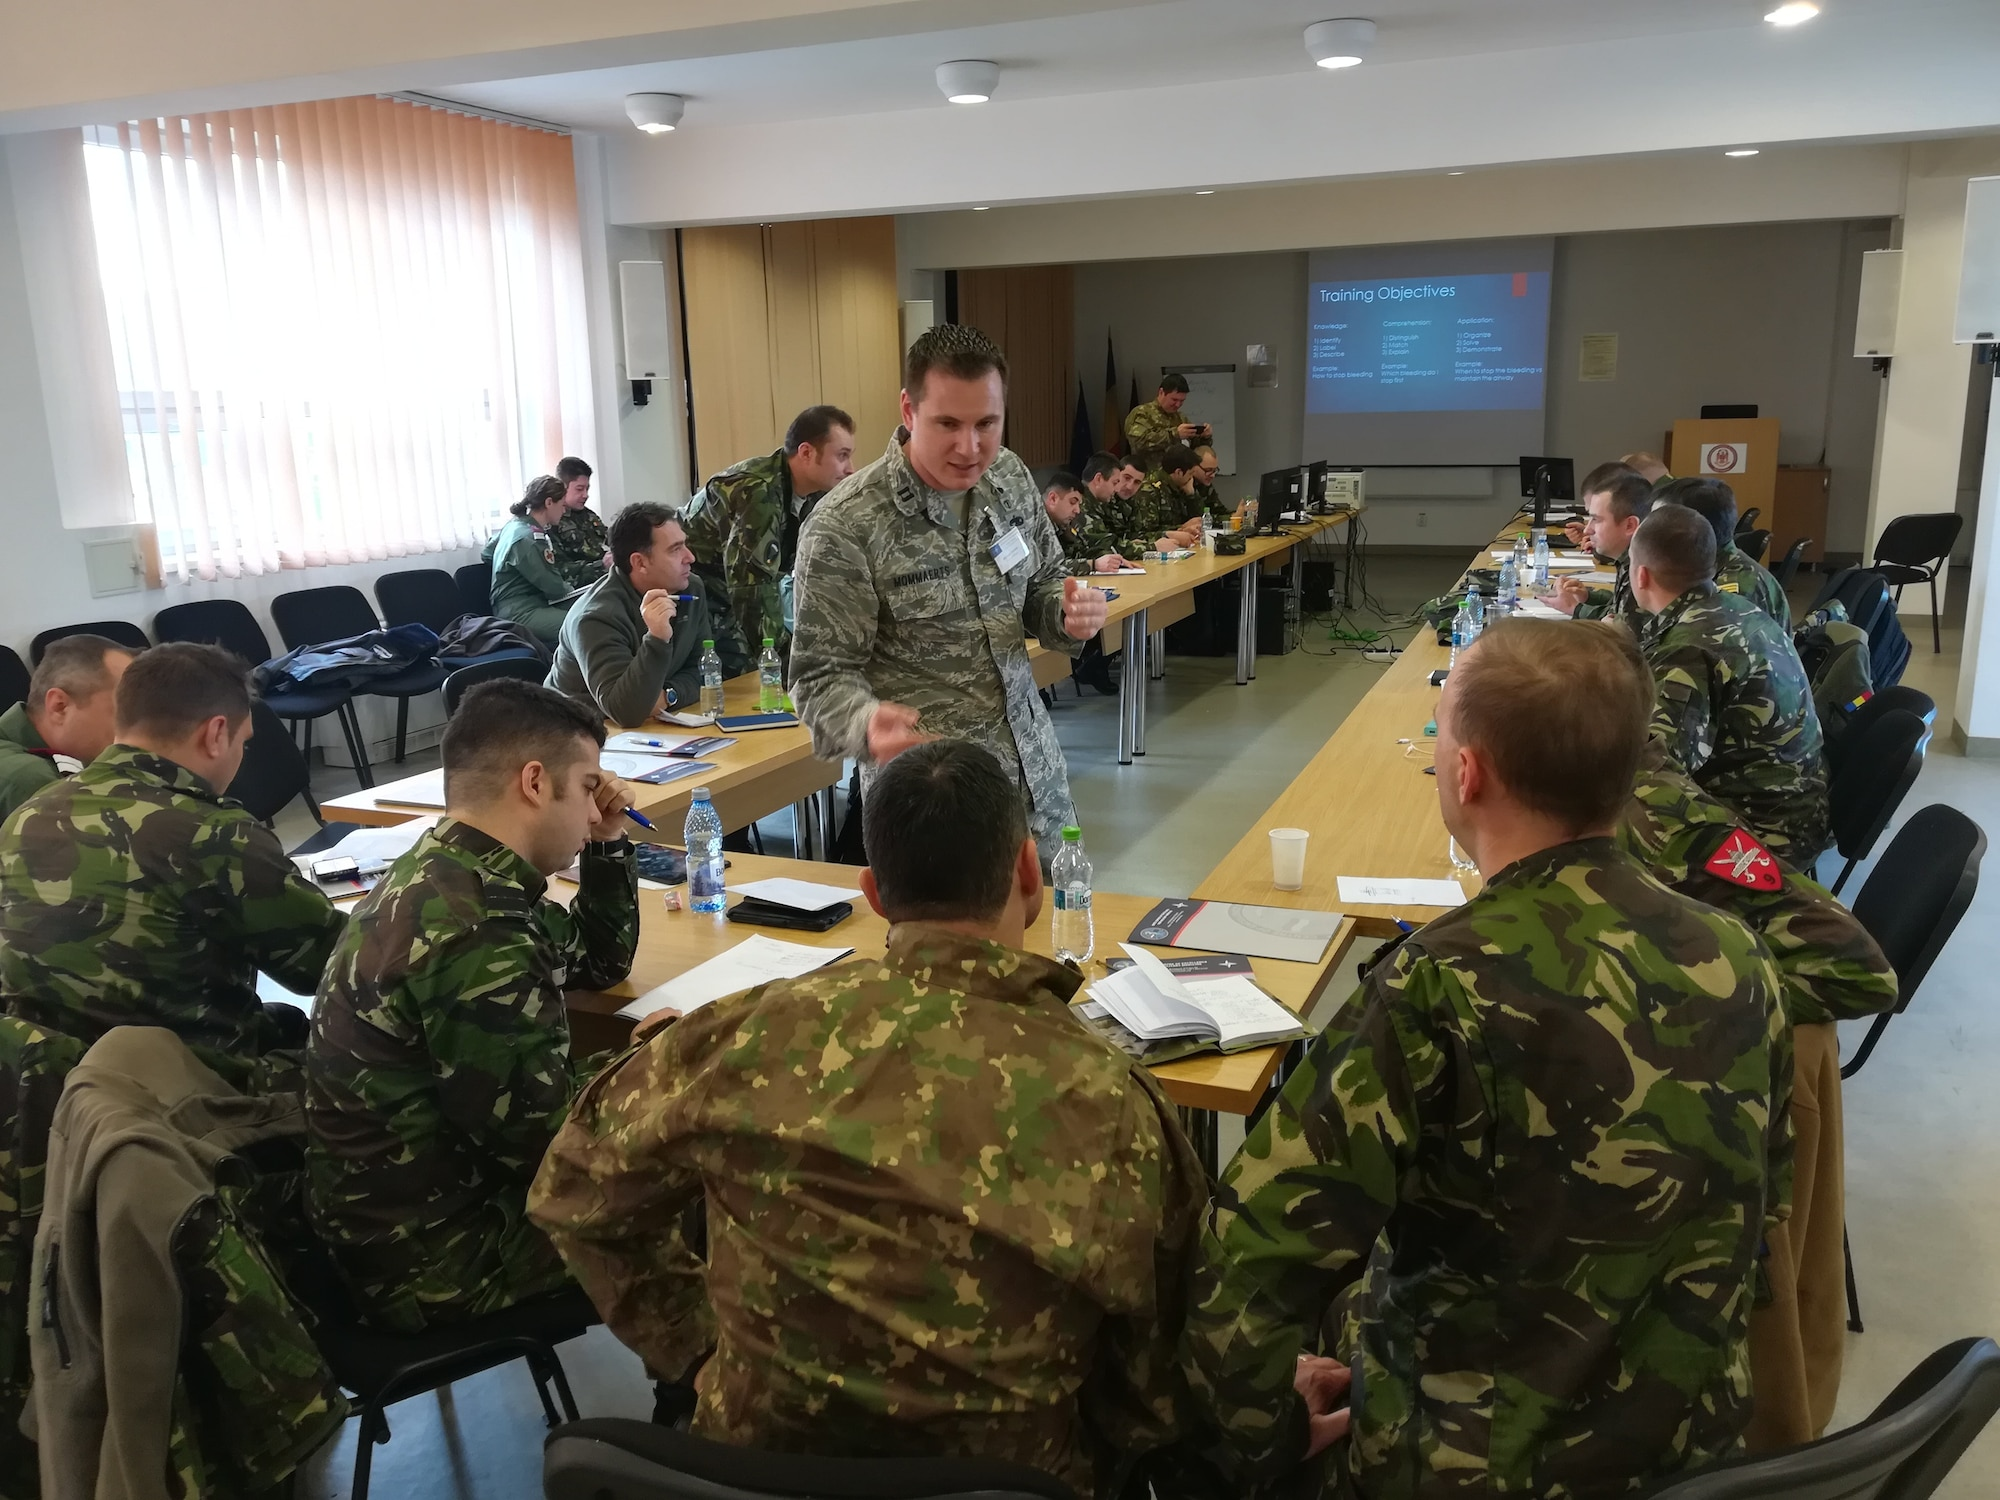 Then-Capt. Jason Mommaerts (center), U.S. Air Forces in Europe-Air Forces Africa International Health Specialist, teaches a class of 25 Romanian Land Forces medics on the different types of training objectives at a military medical center in Cluj Napoca, Romania, December 11, 2017. (U.S. Air Force photo by Col. Peter Vekszler)